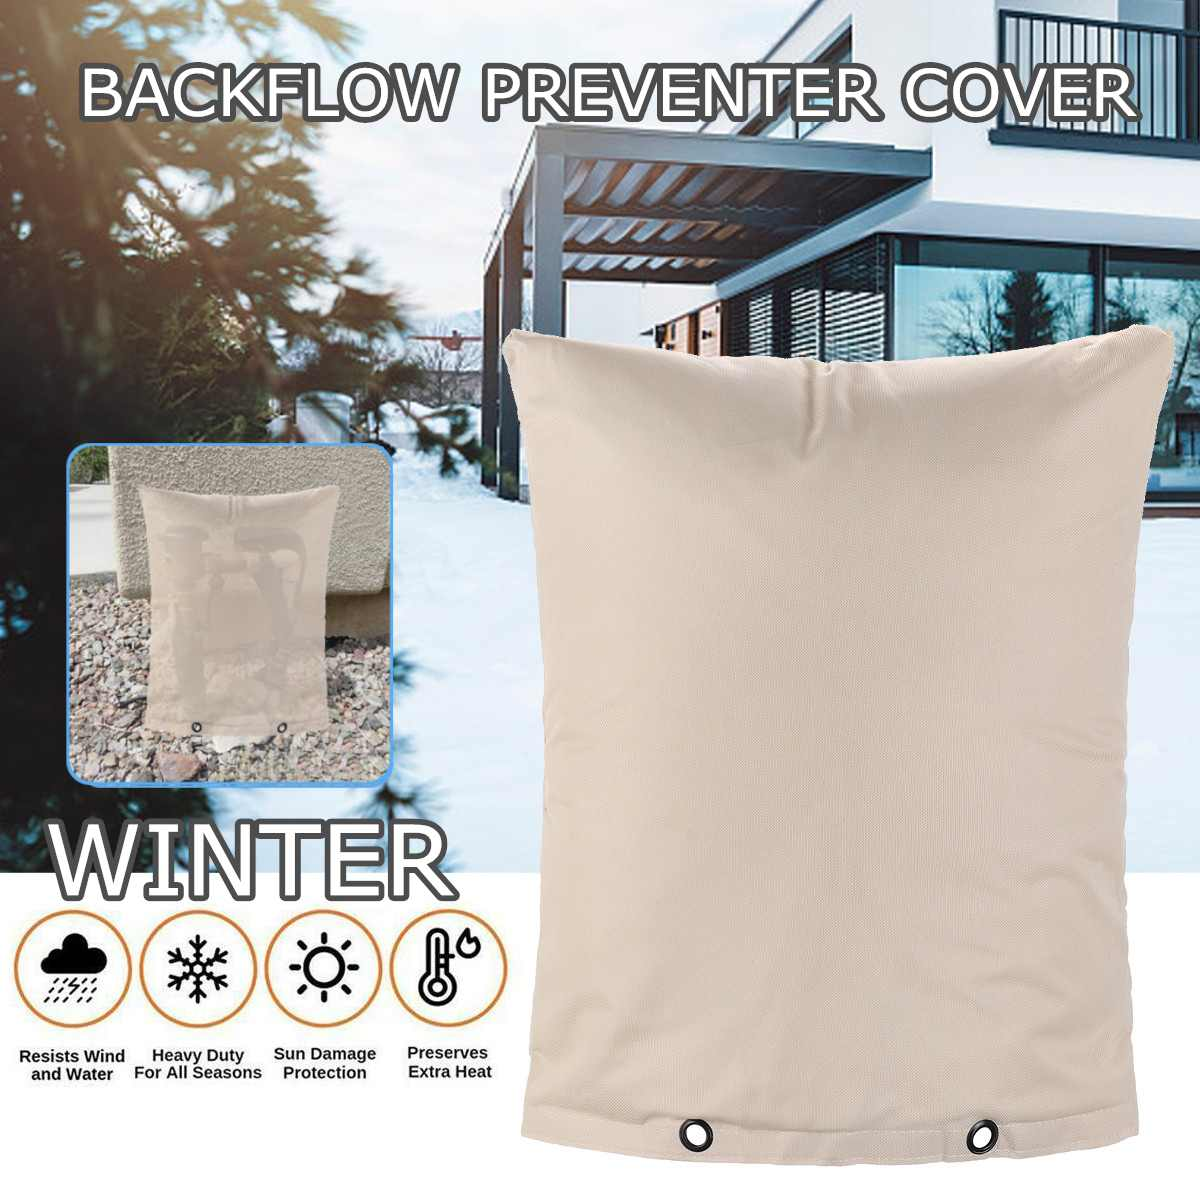 Hot Water Sprinkler Valve Box Outdoor Backflow Preventer Insulation Cover For Winter Pipe Freeze Protection Waterproof Pouch